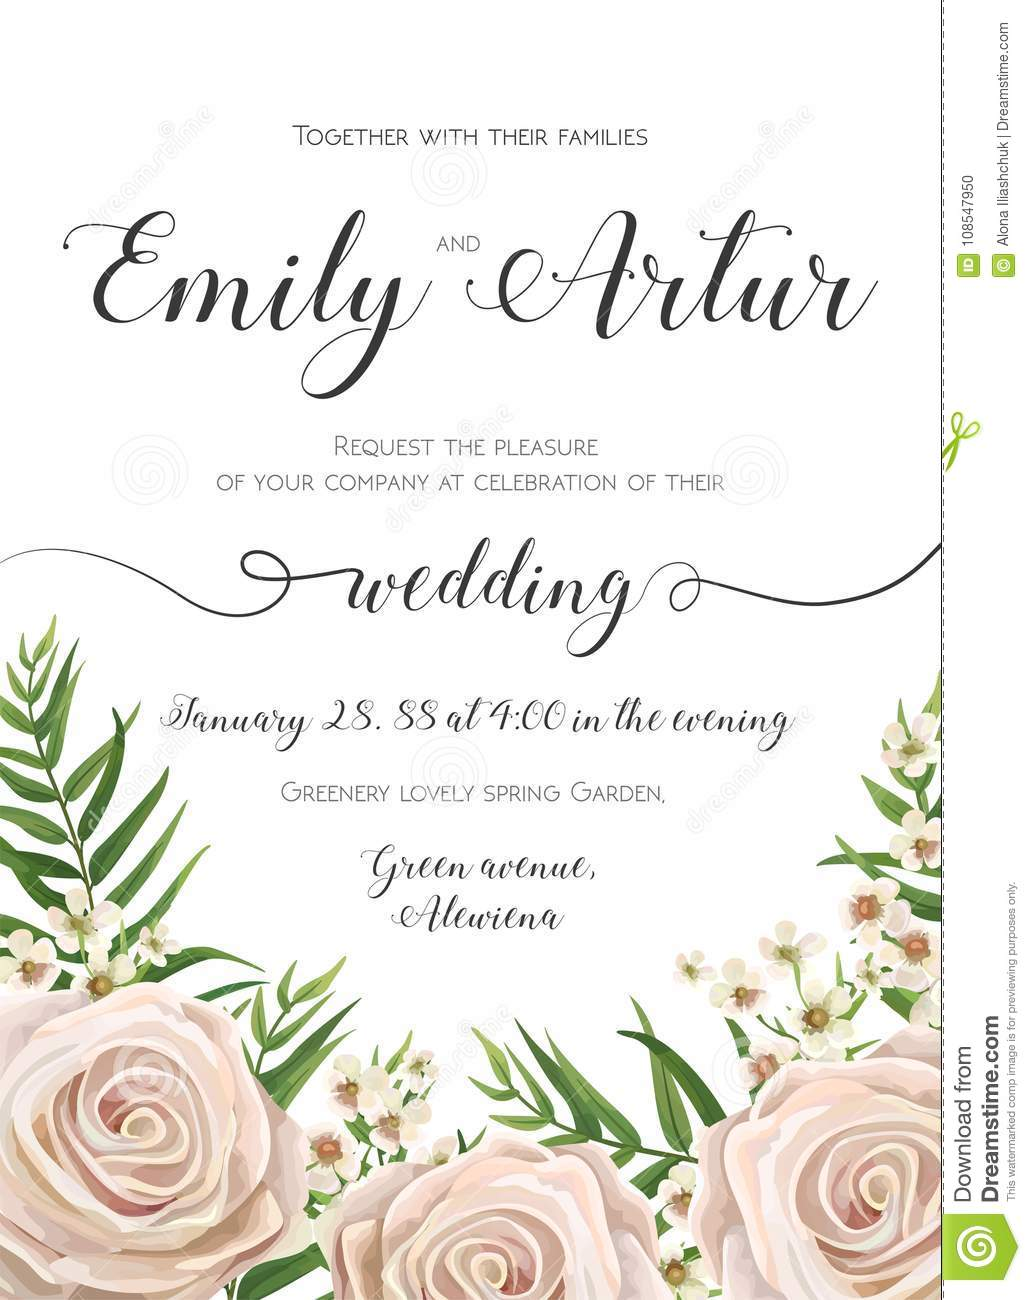 Wedding Invitation Floral Invite Card Design With Creamy White Garden Rose Flowers Wax Flower Green Tropic Palm Tree Leaves Greenery Border Frame: Floral Wedding Invitations With Tree At Websimilar.org